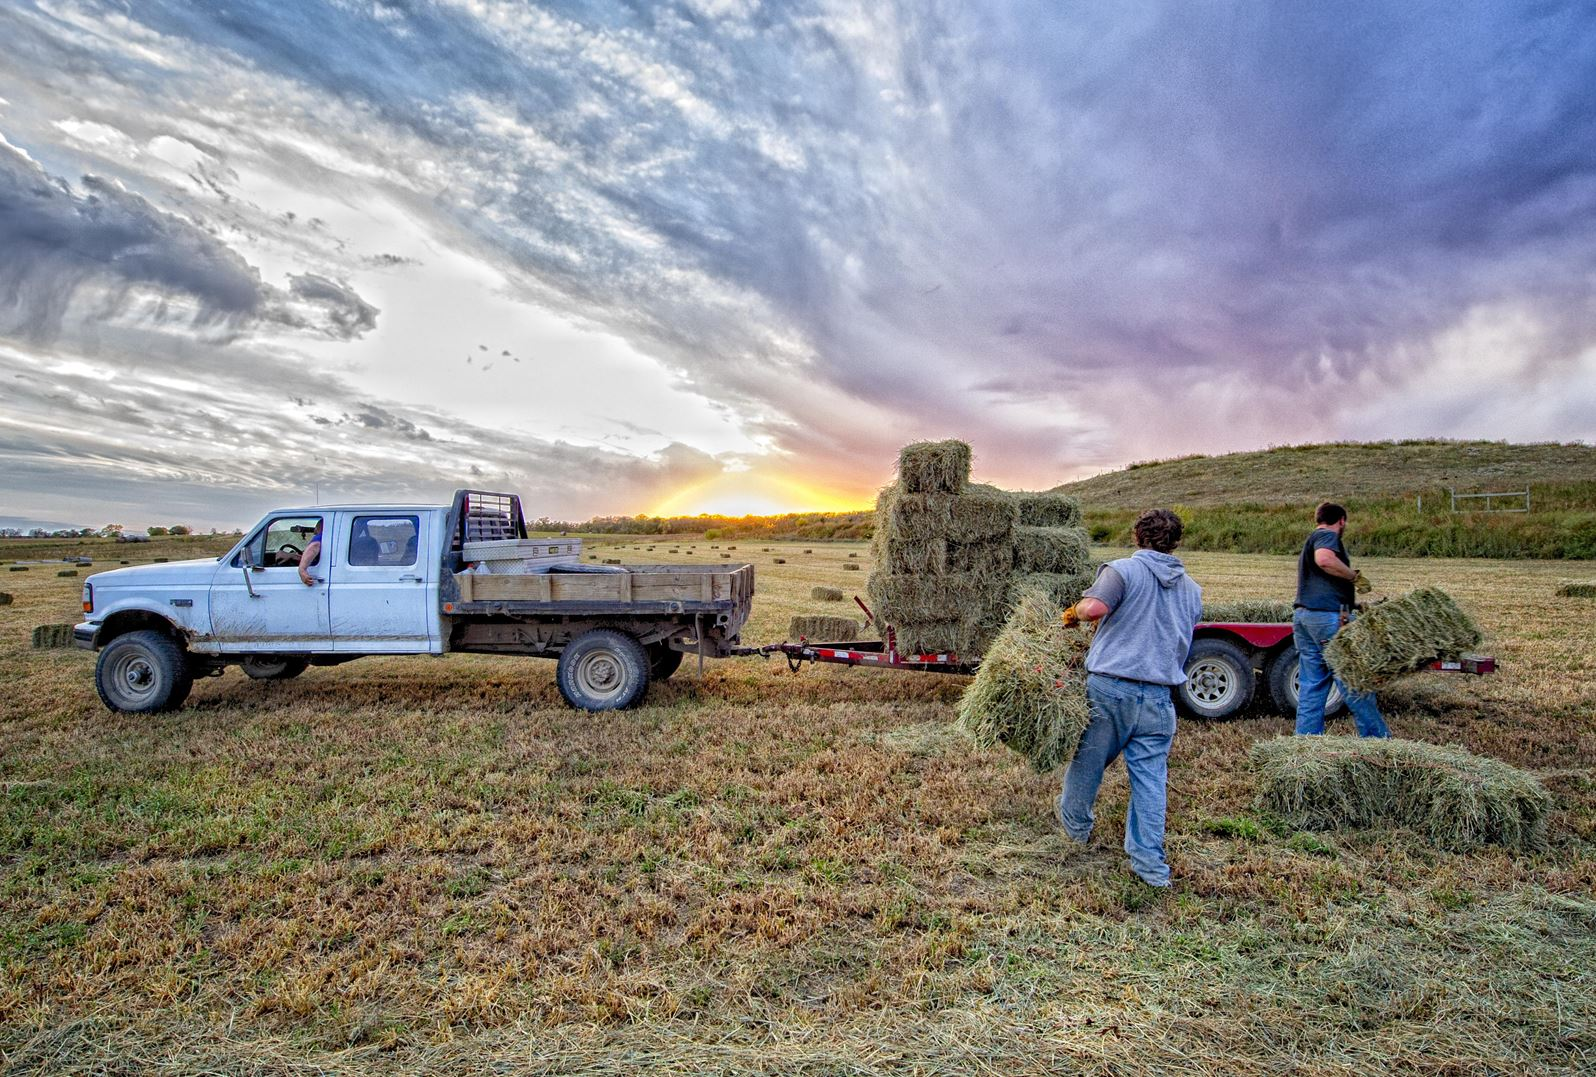 Men loading hay bales on a trailer as the sun sets.